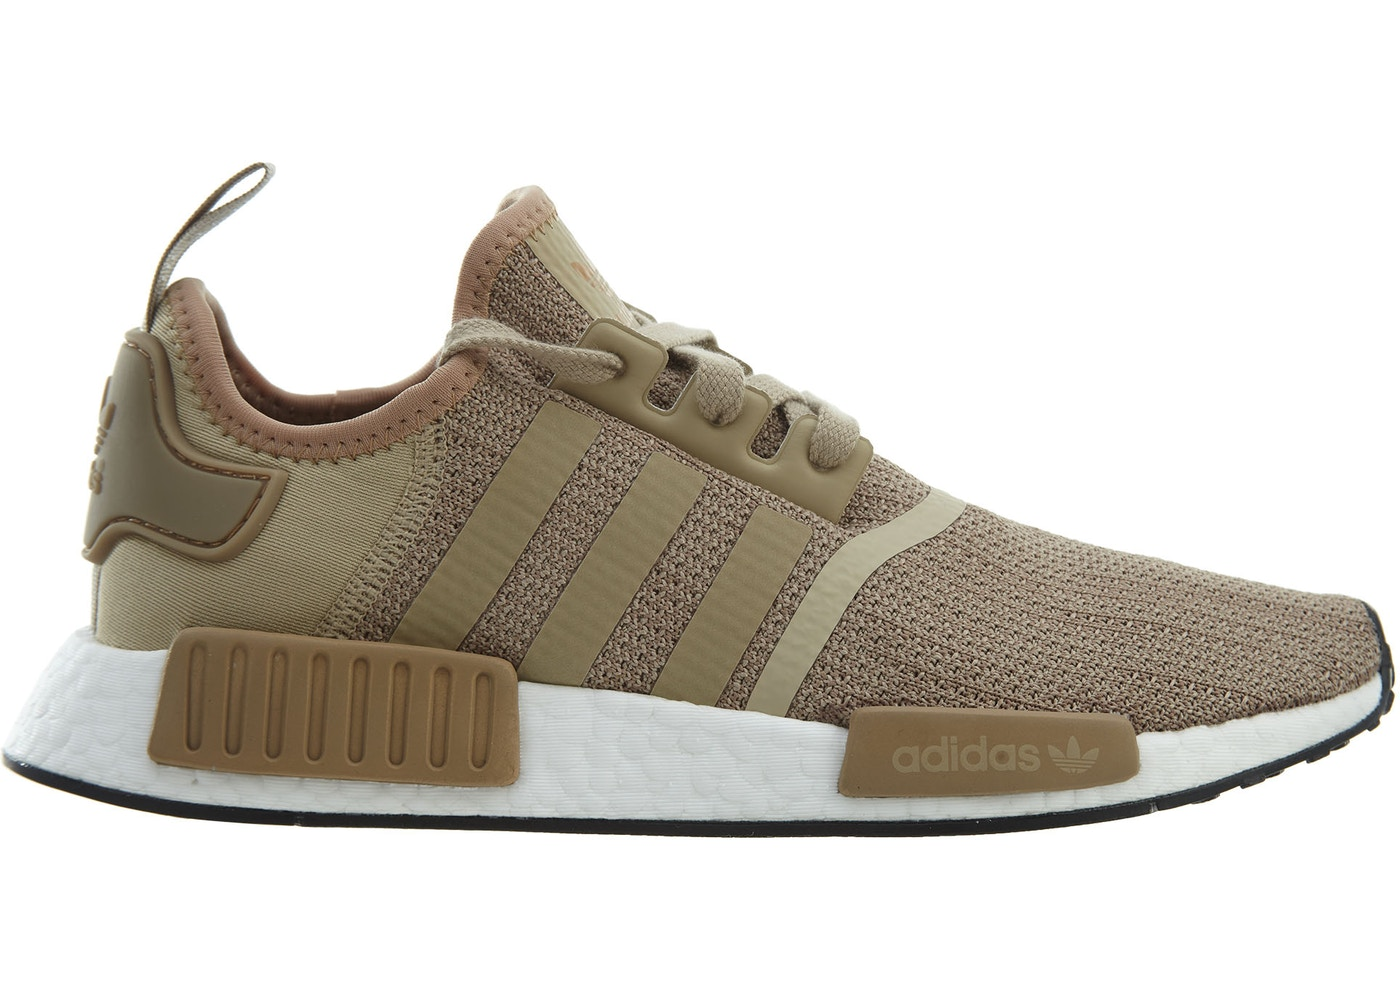 b808cd852364 Sell. or Ask. Size 9. View All Bids. adidas Nmd r1 Raw Gold Cardboard-White